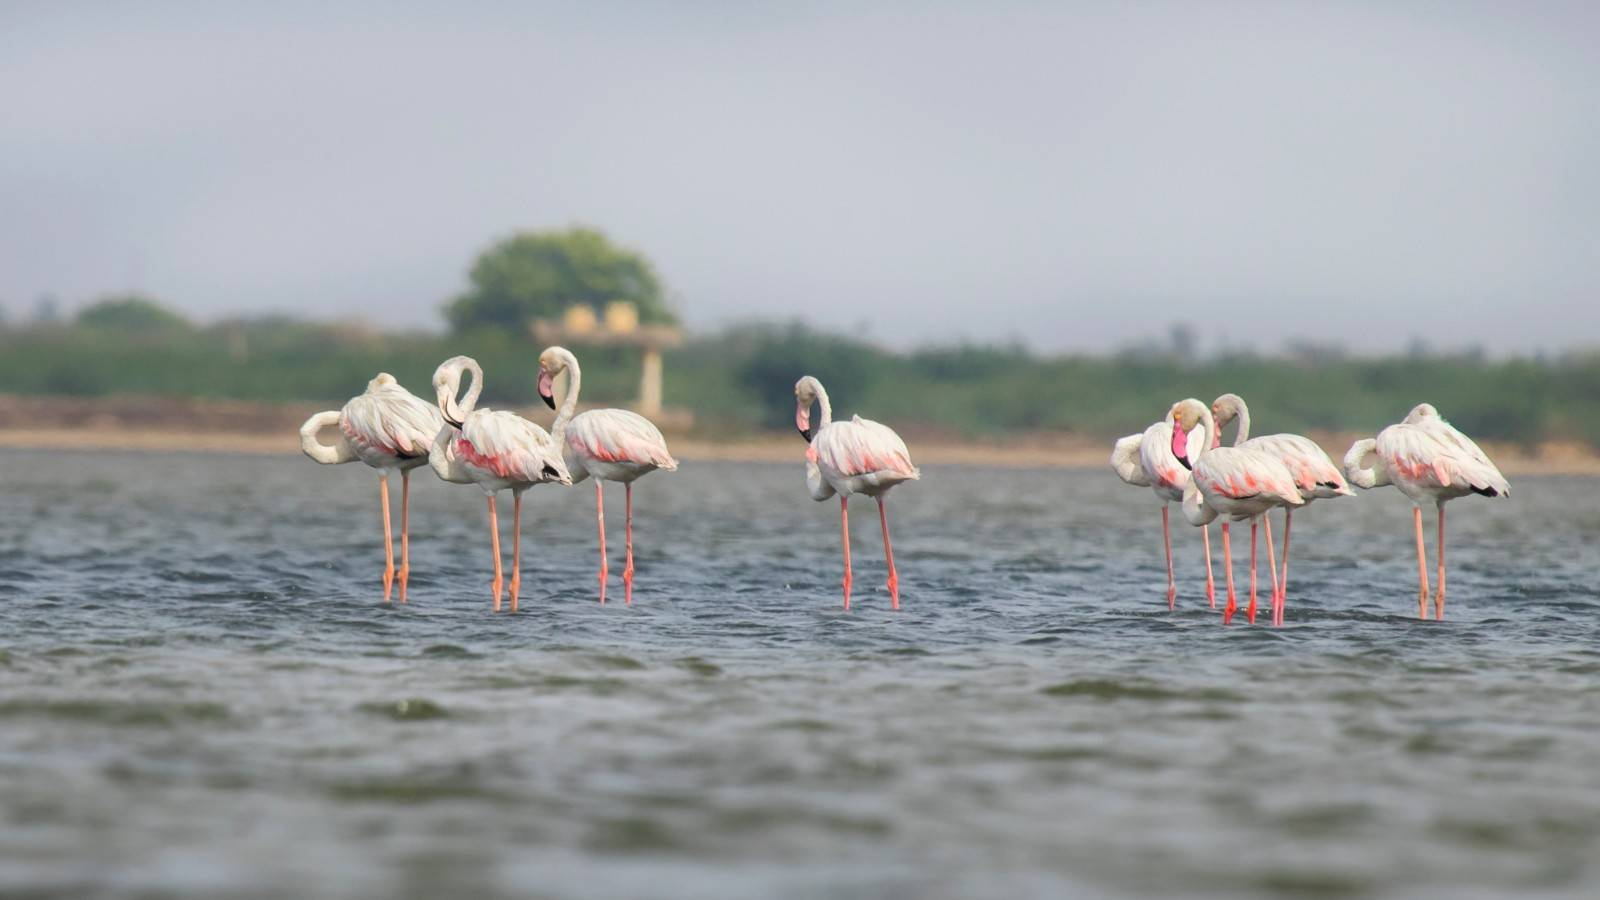 Pulicat Flamingoes,Chennai Water birds Flamingo,Tamilnadu Flamingo birds